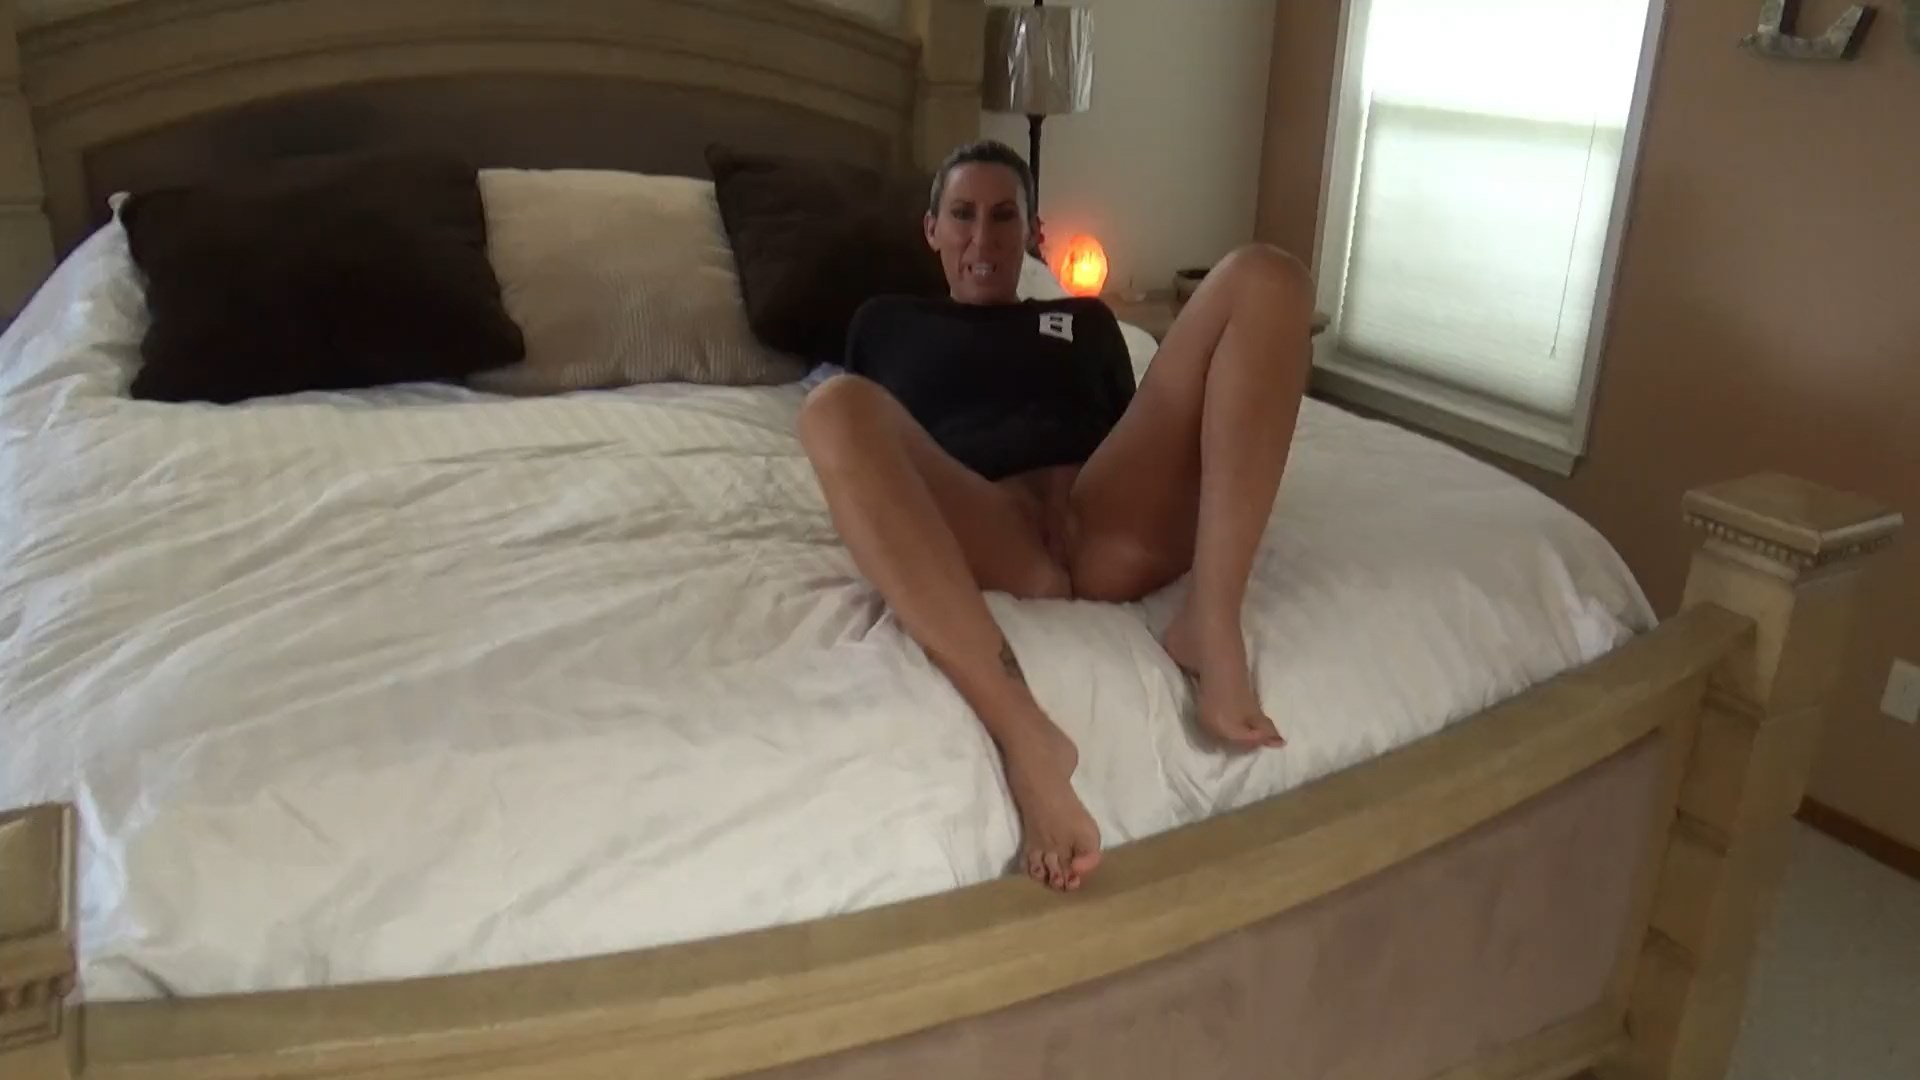 Katie71 - Mom Caught Son with Her Panties Taboo